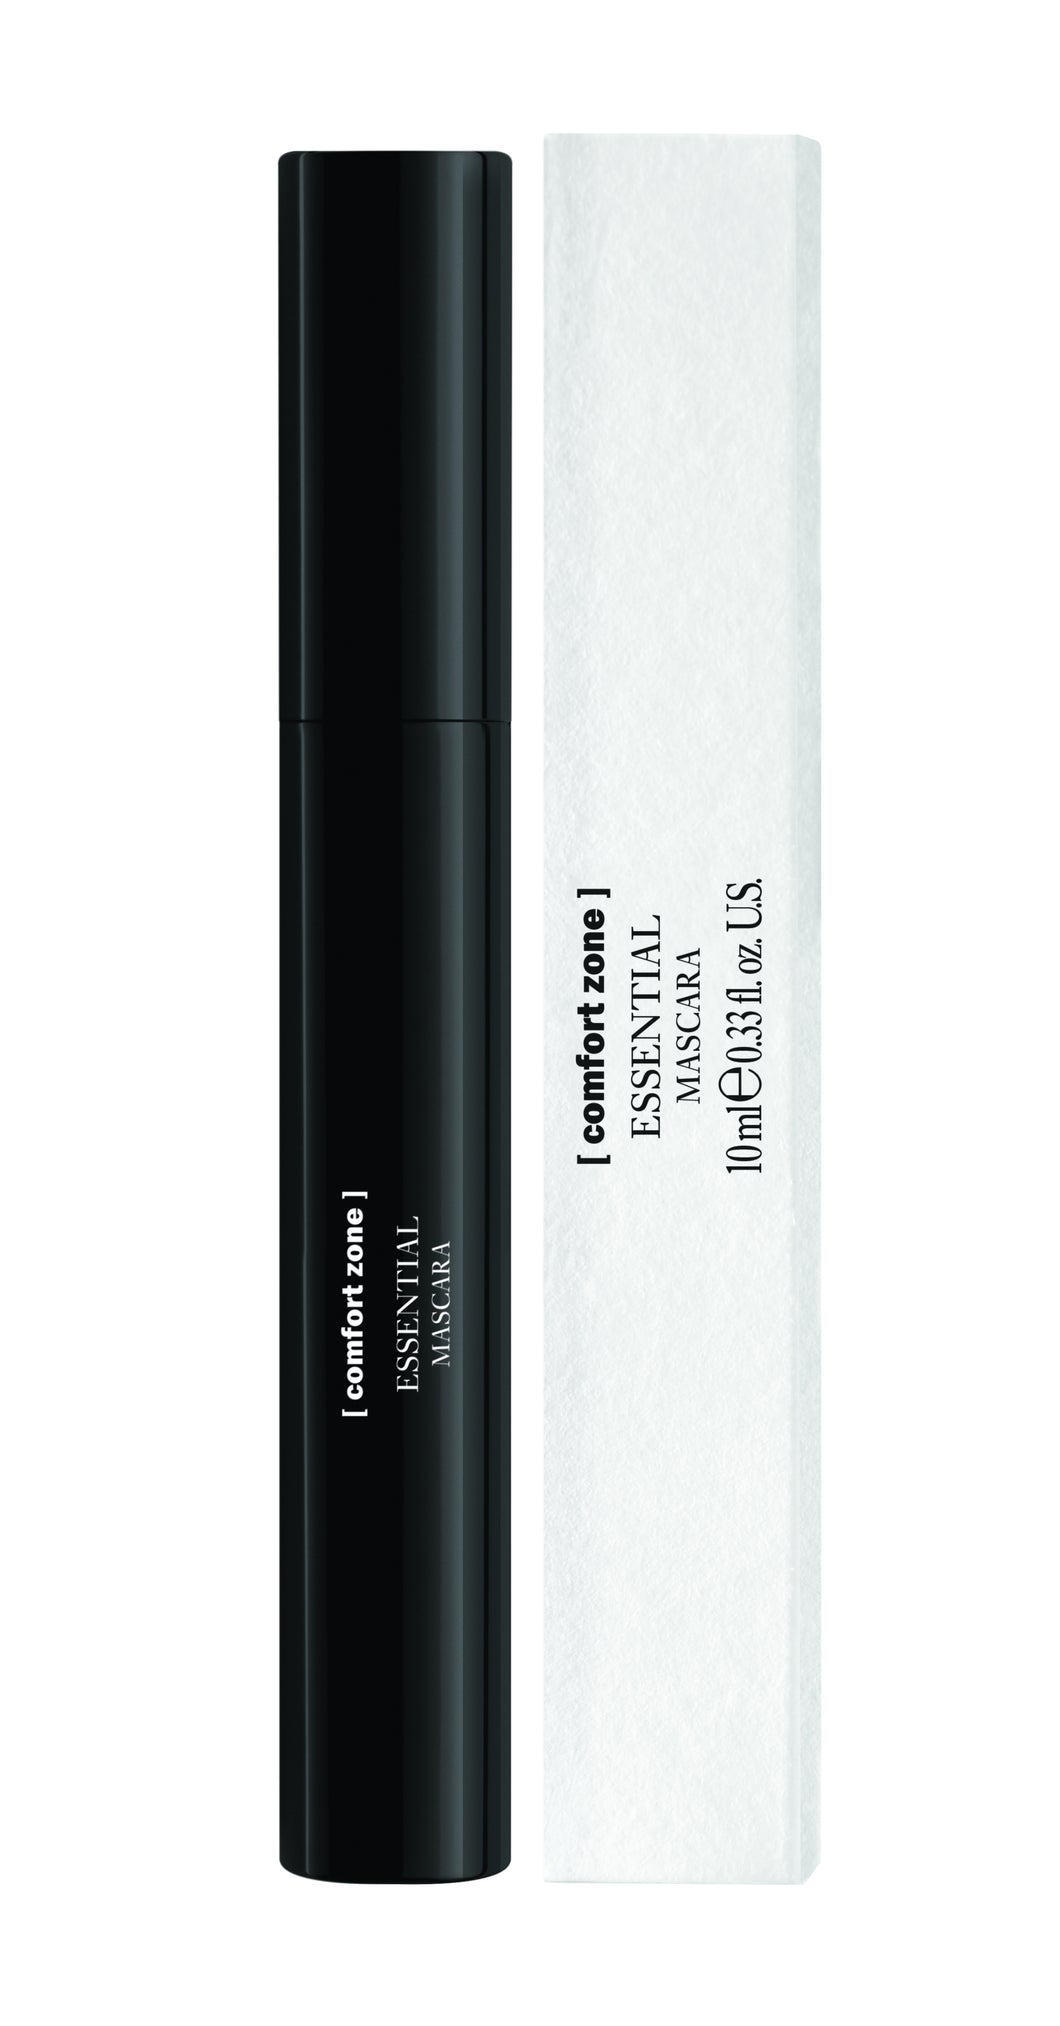 EssentialMascara_BeautyStudio11.jpg